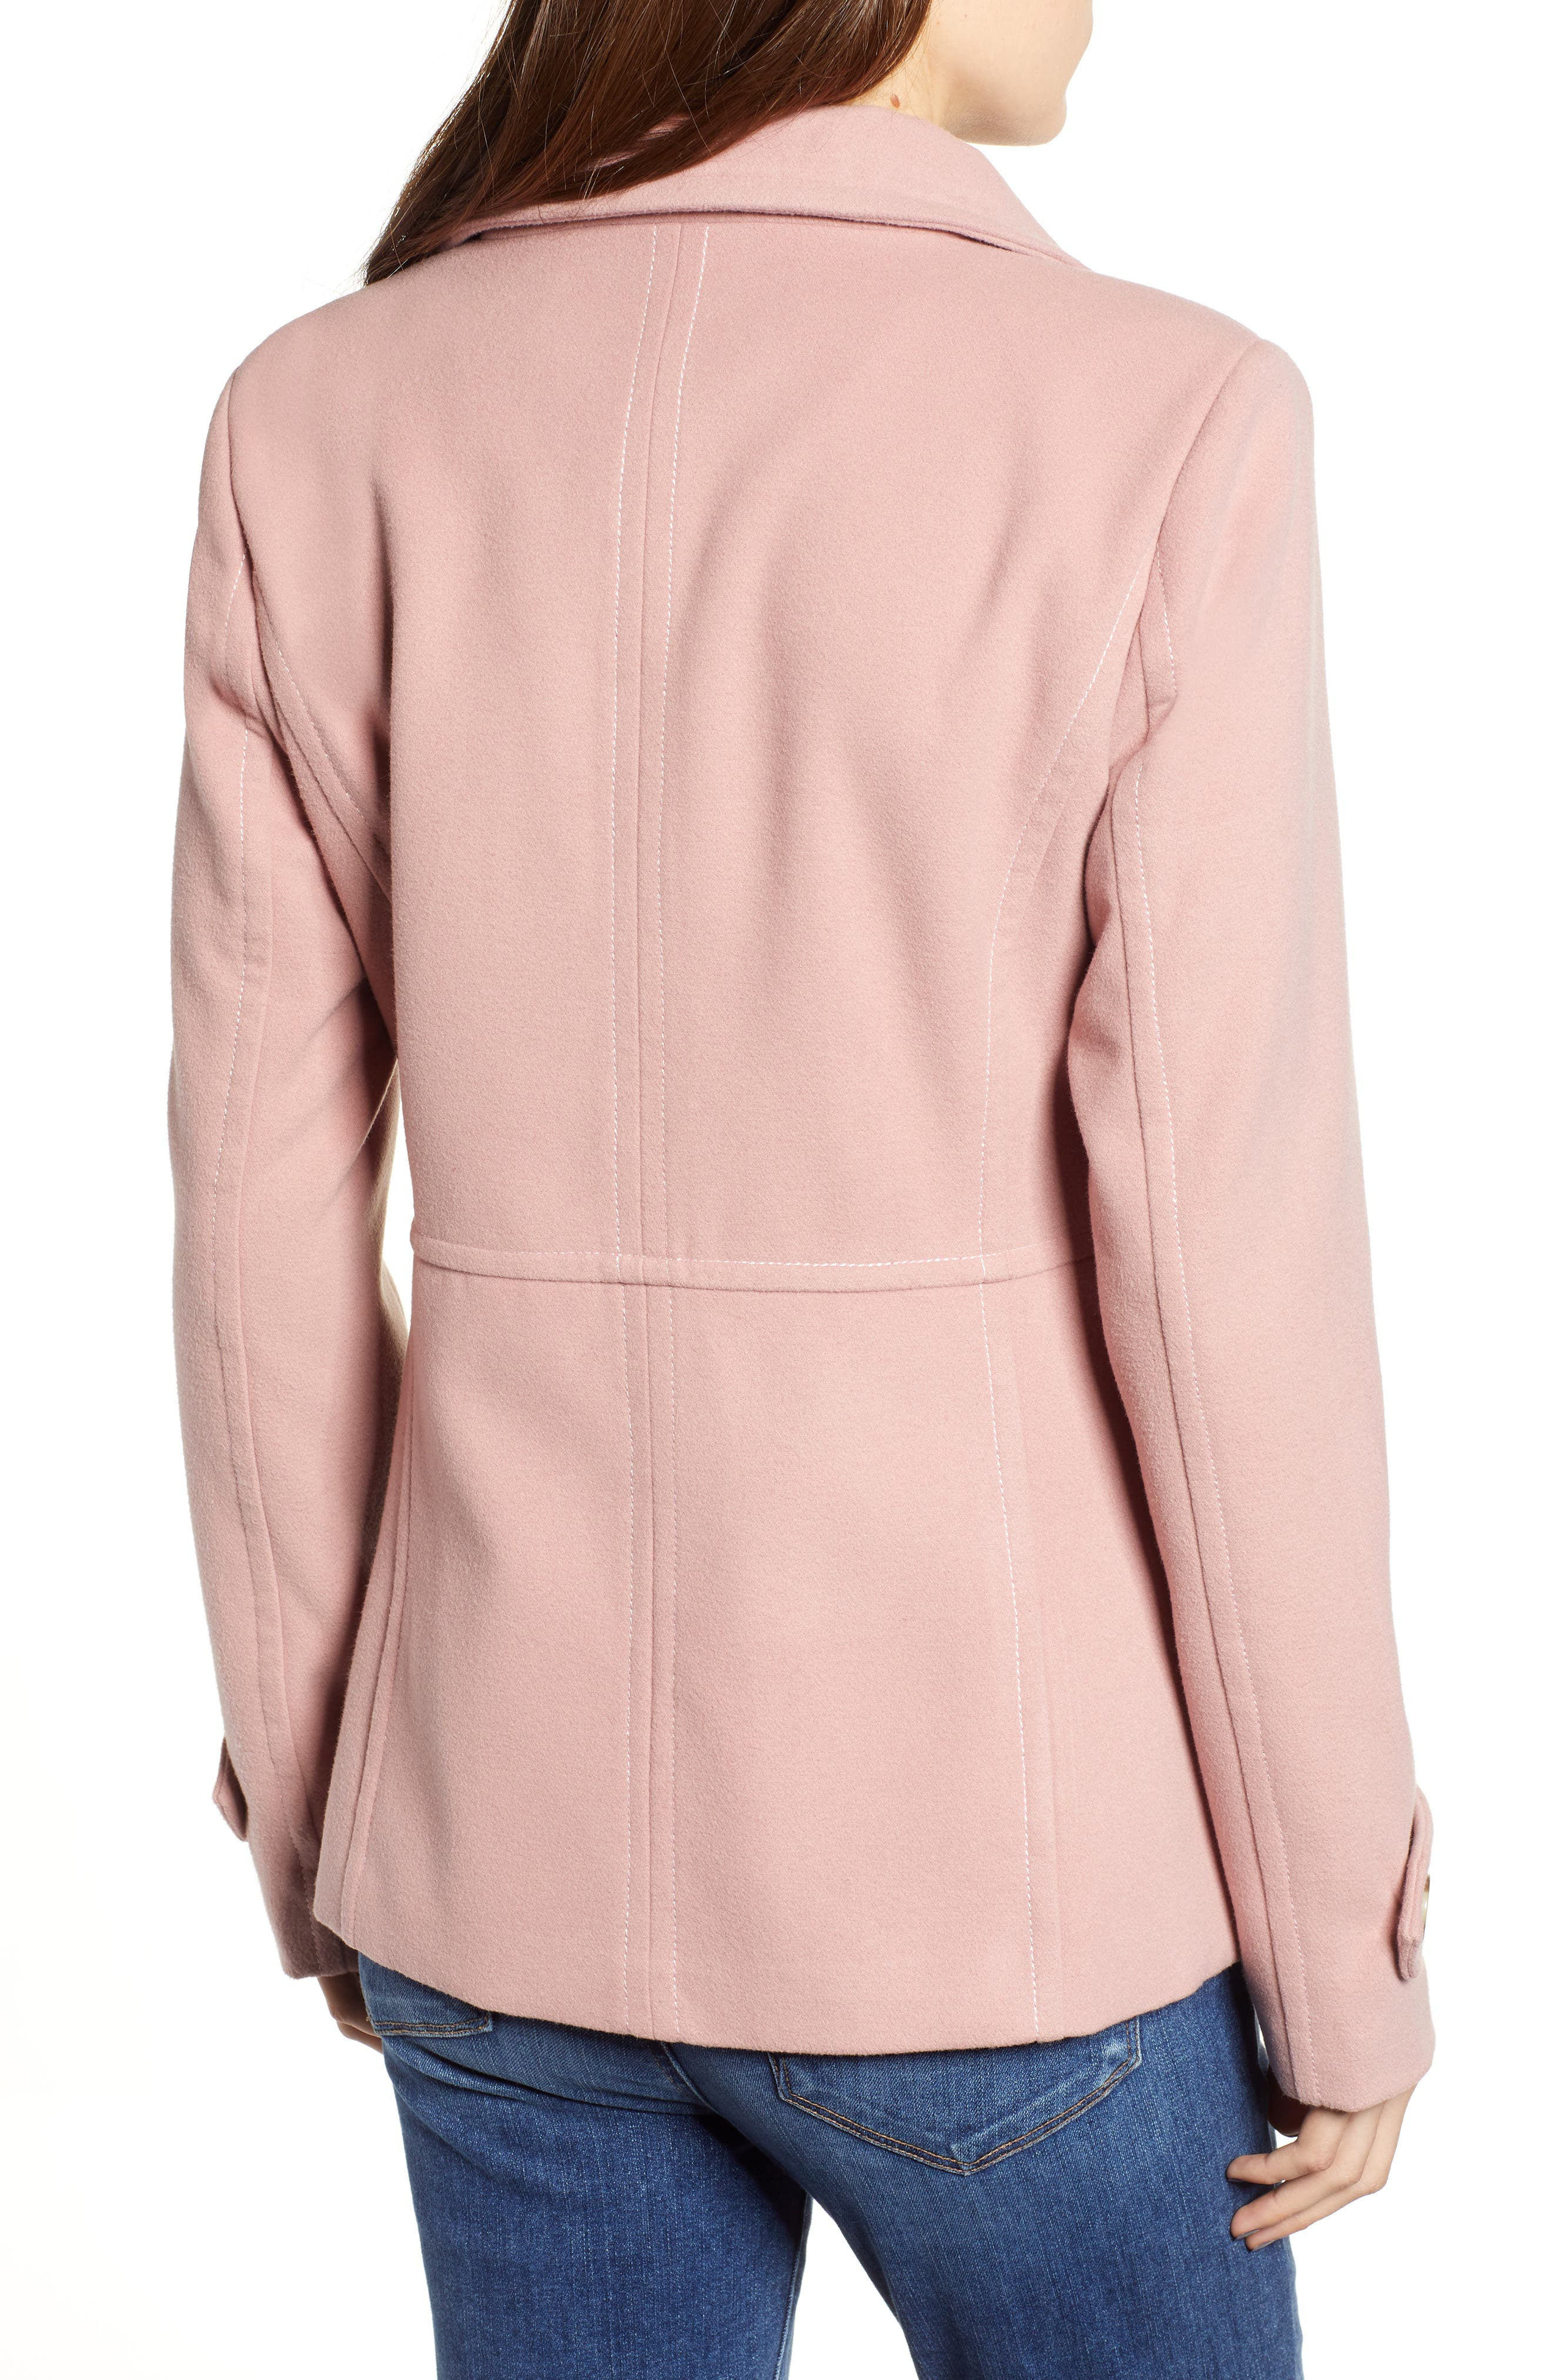 THREAD & SUPPLY,                             Double Breasted Peacoat,                             Alternate thumbnail 2, color,                             BLUSH